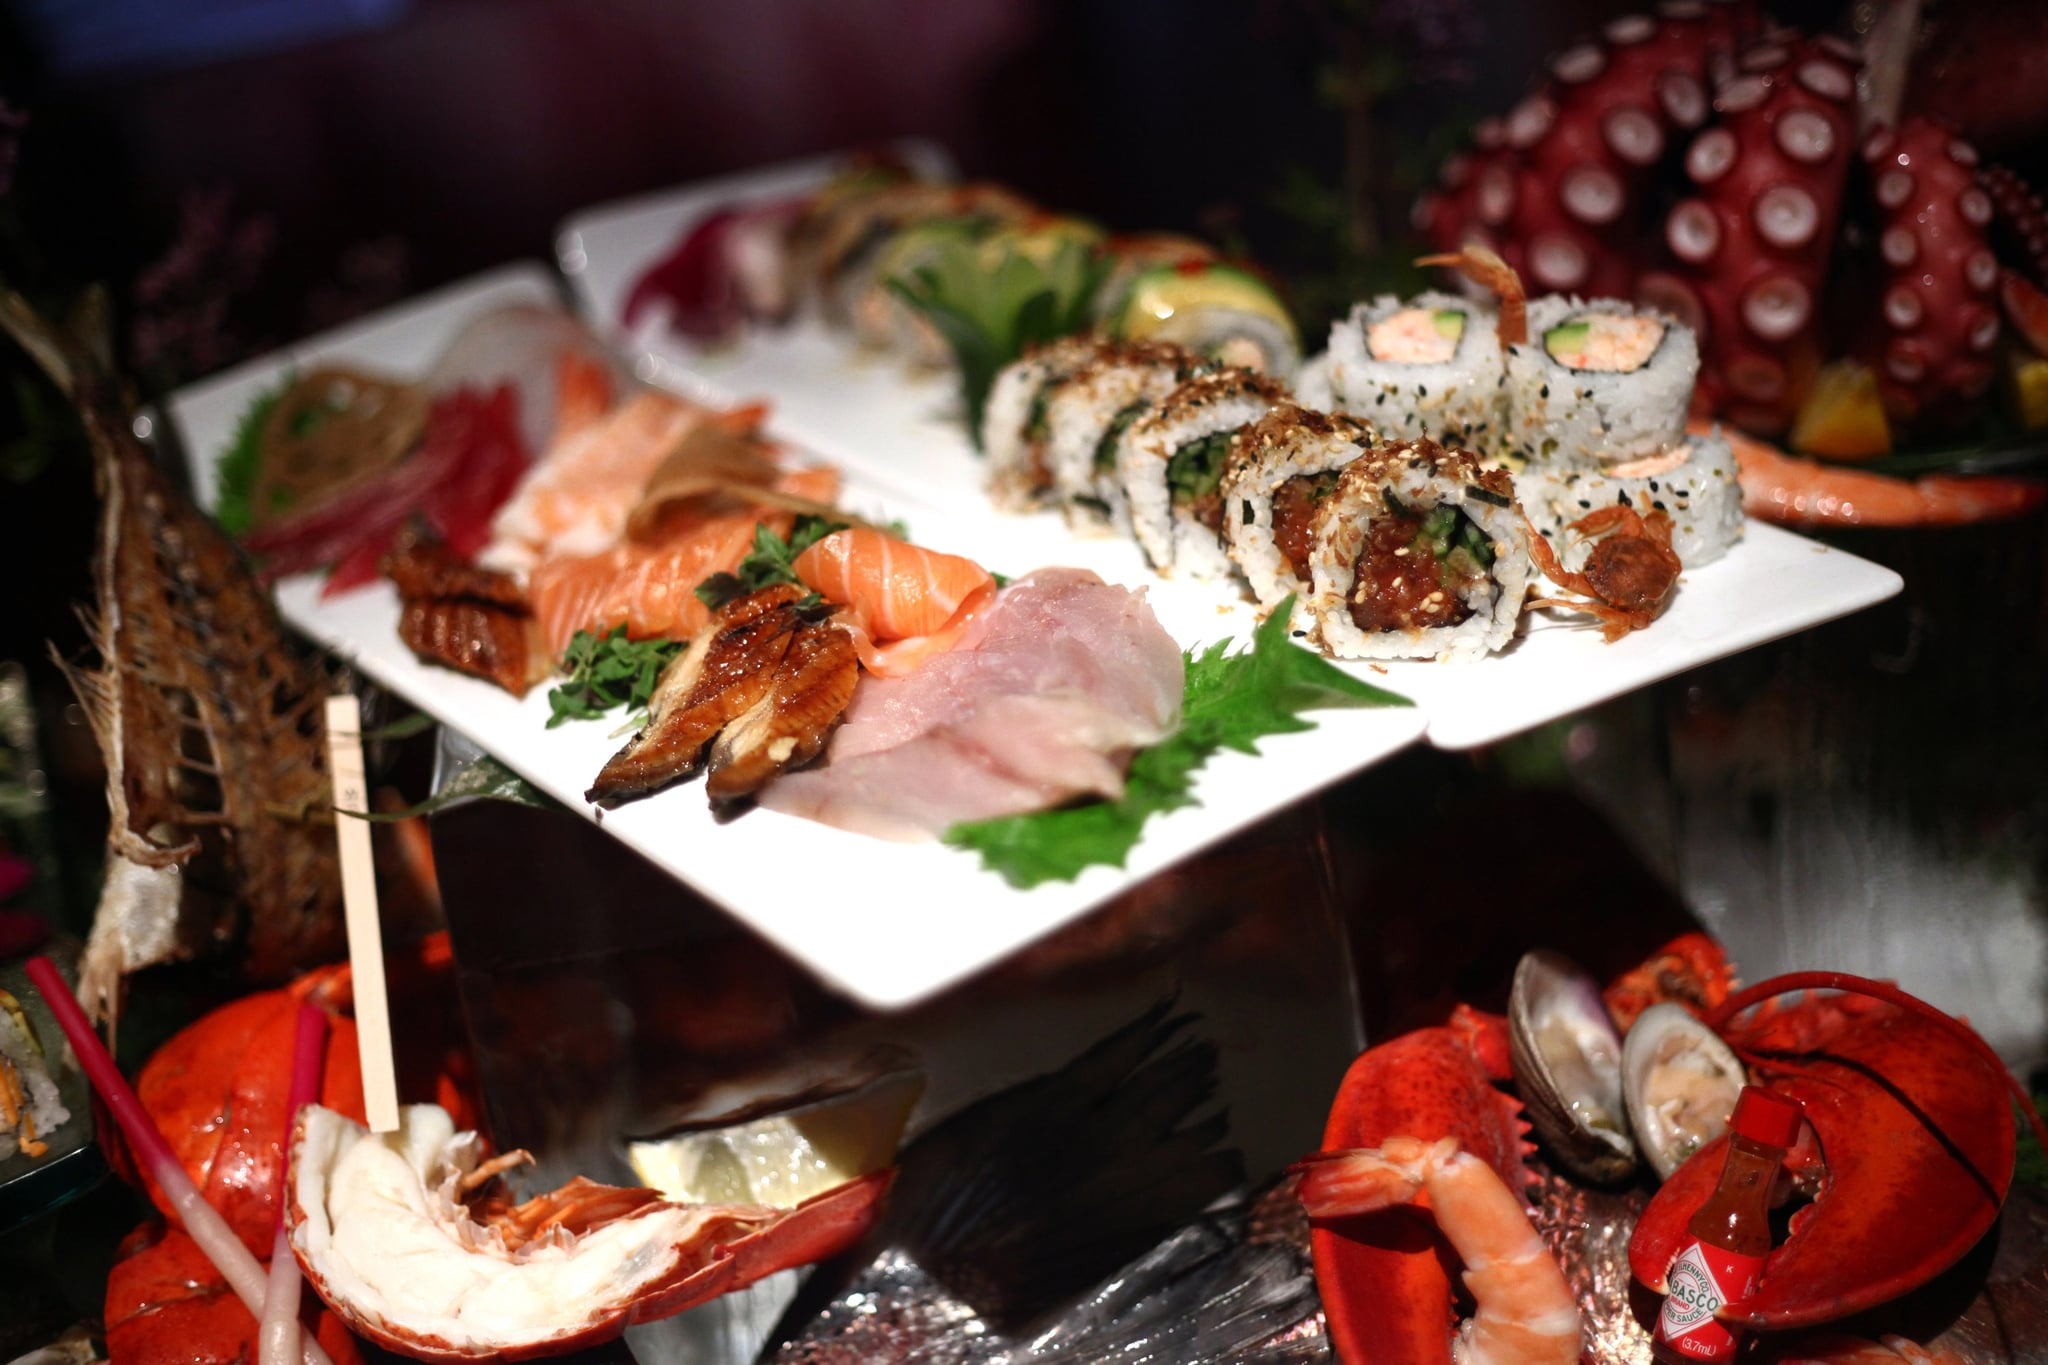 Sushi and Seafood Station